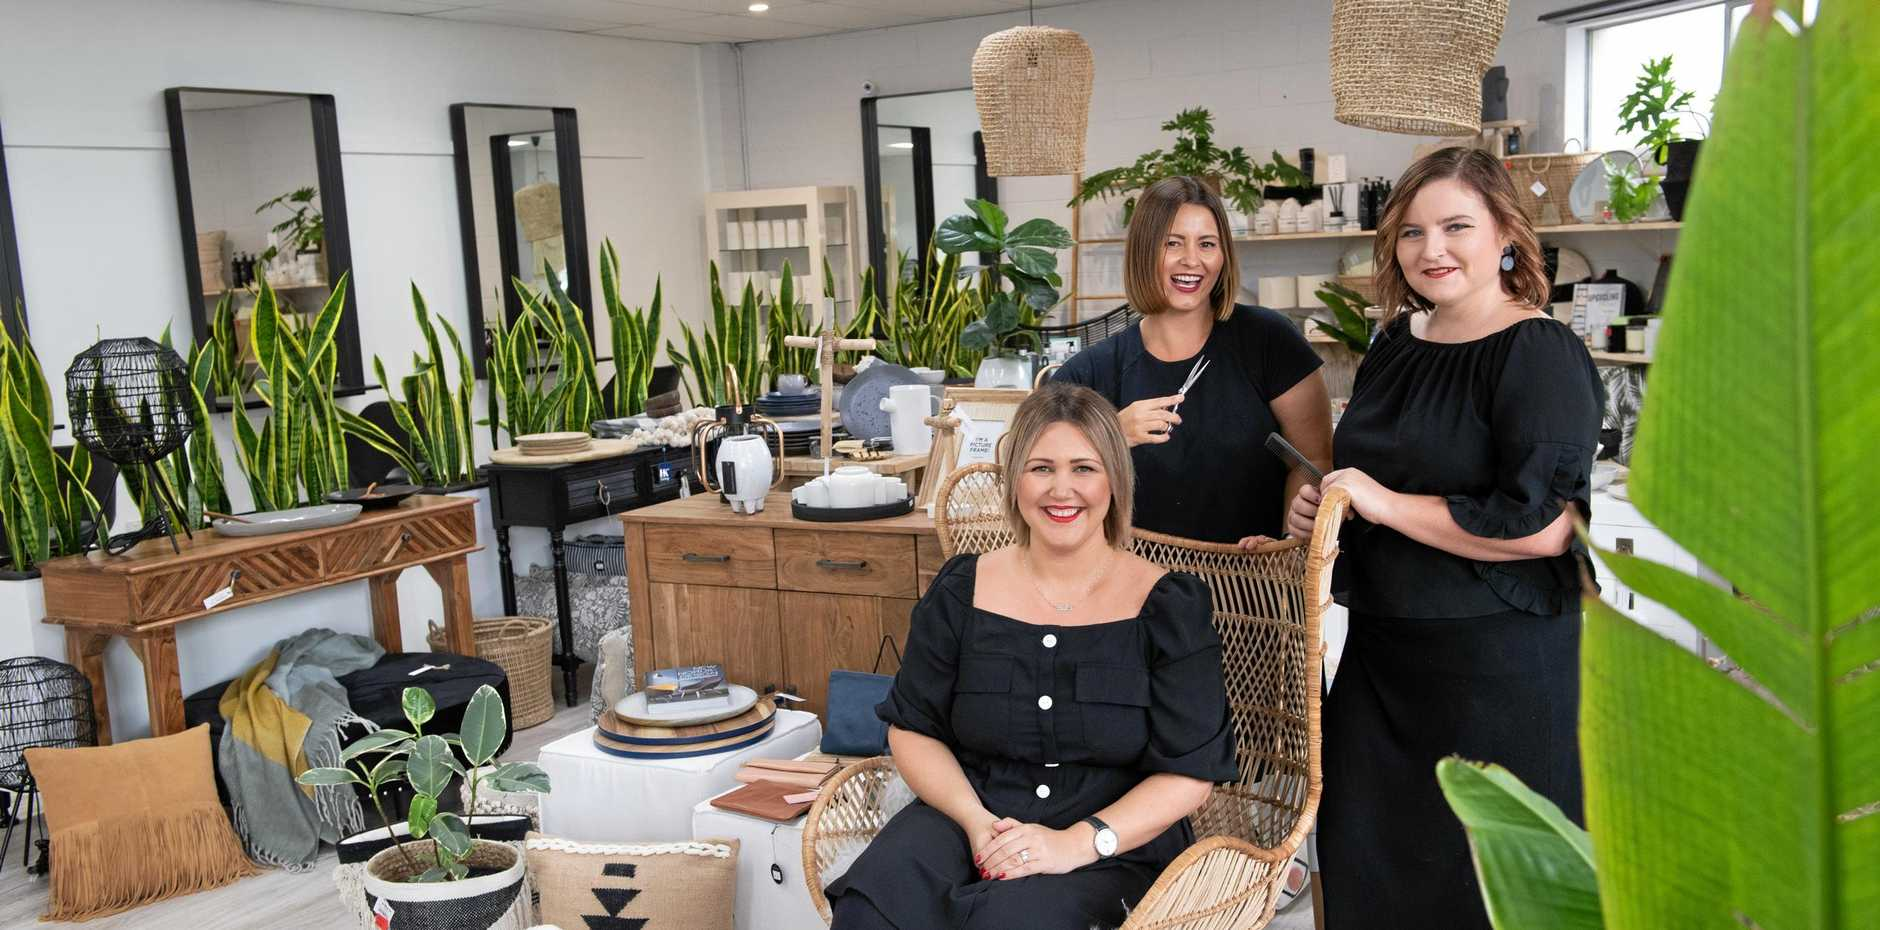 BEST OF BOTH WORLDS: Owner Bel Martin (front) with Dallas Rogers and Chrissy Green at Martin & Co Emporium.